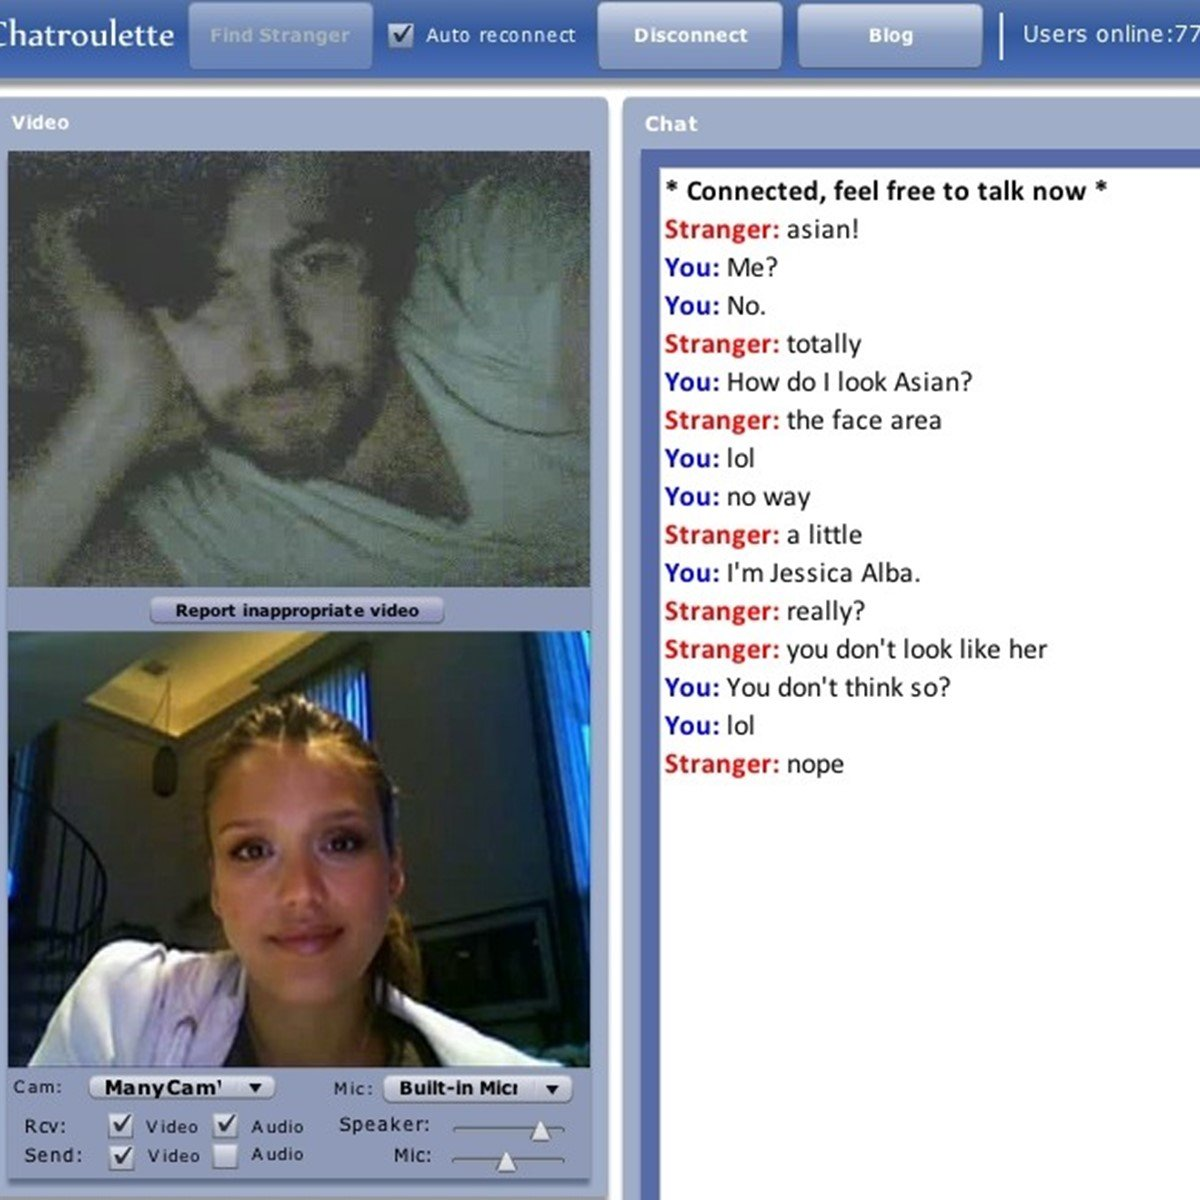 chatroulette similar sites